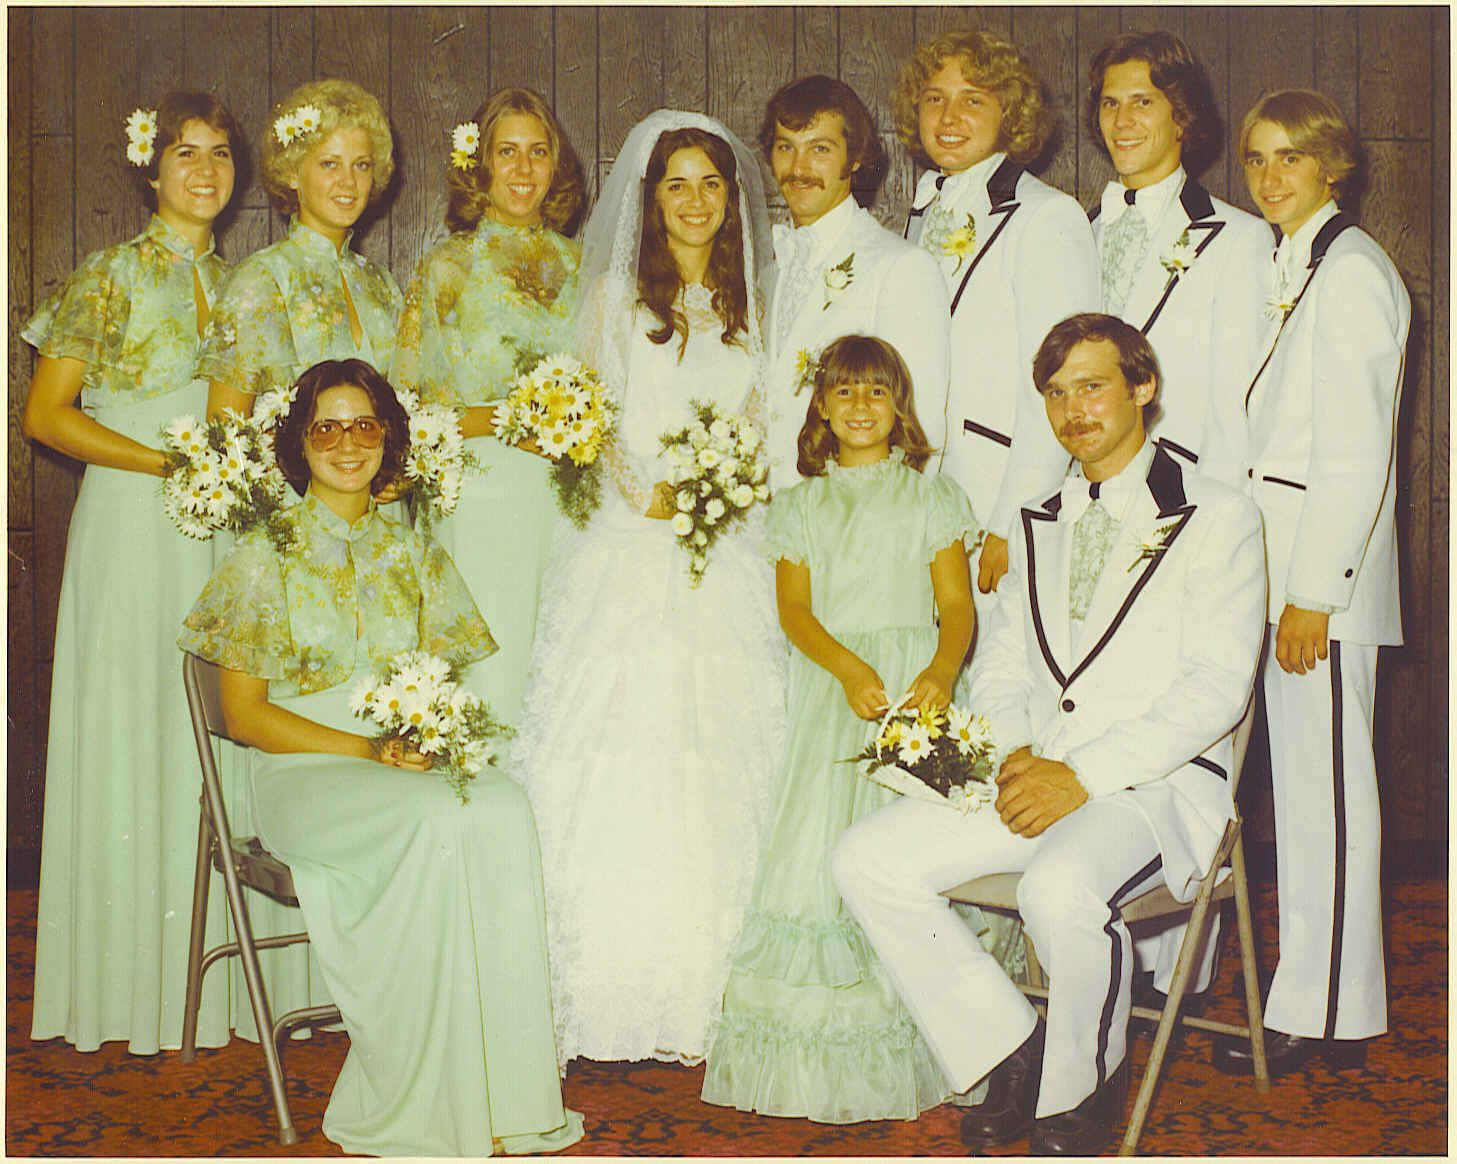 Vintage 60 S Style Wedding Dresses: Groovy Brides Of The 70's